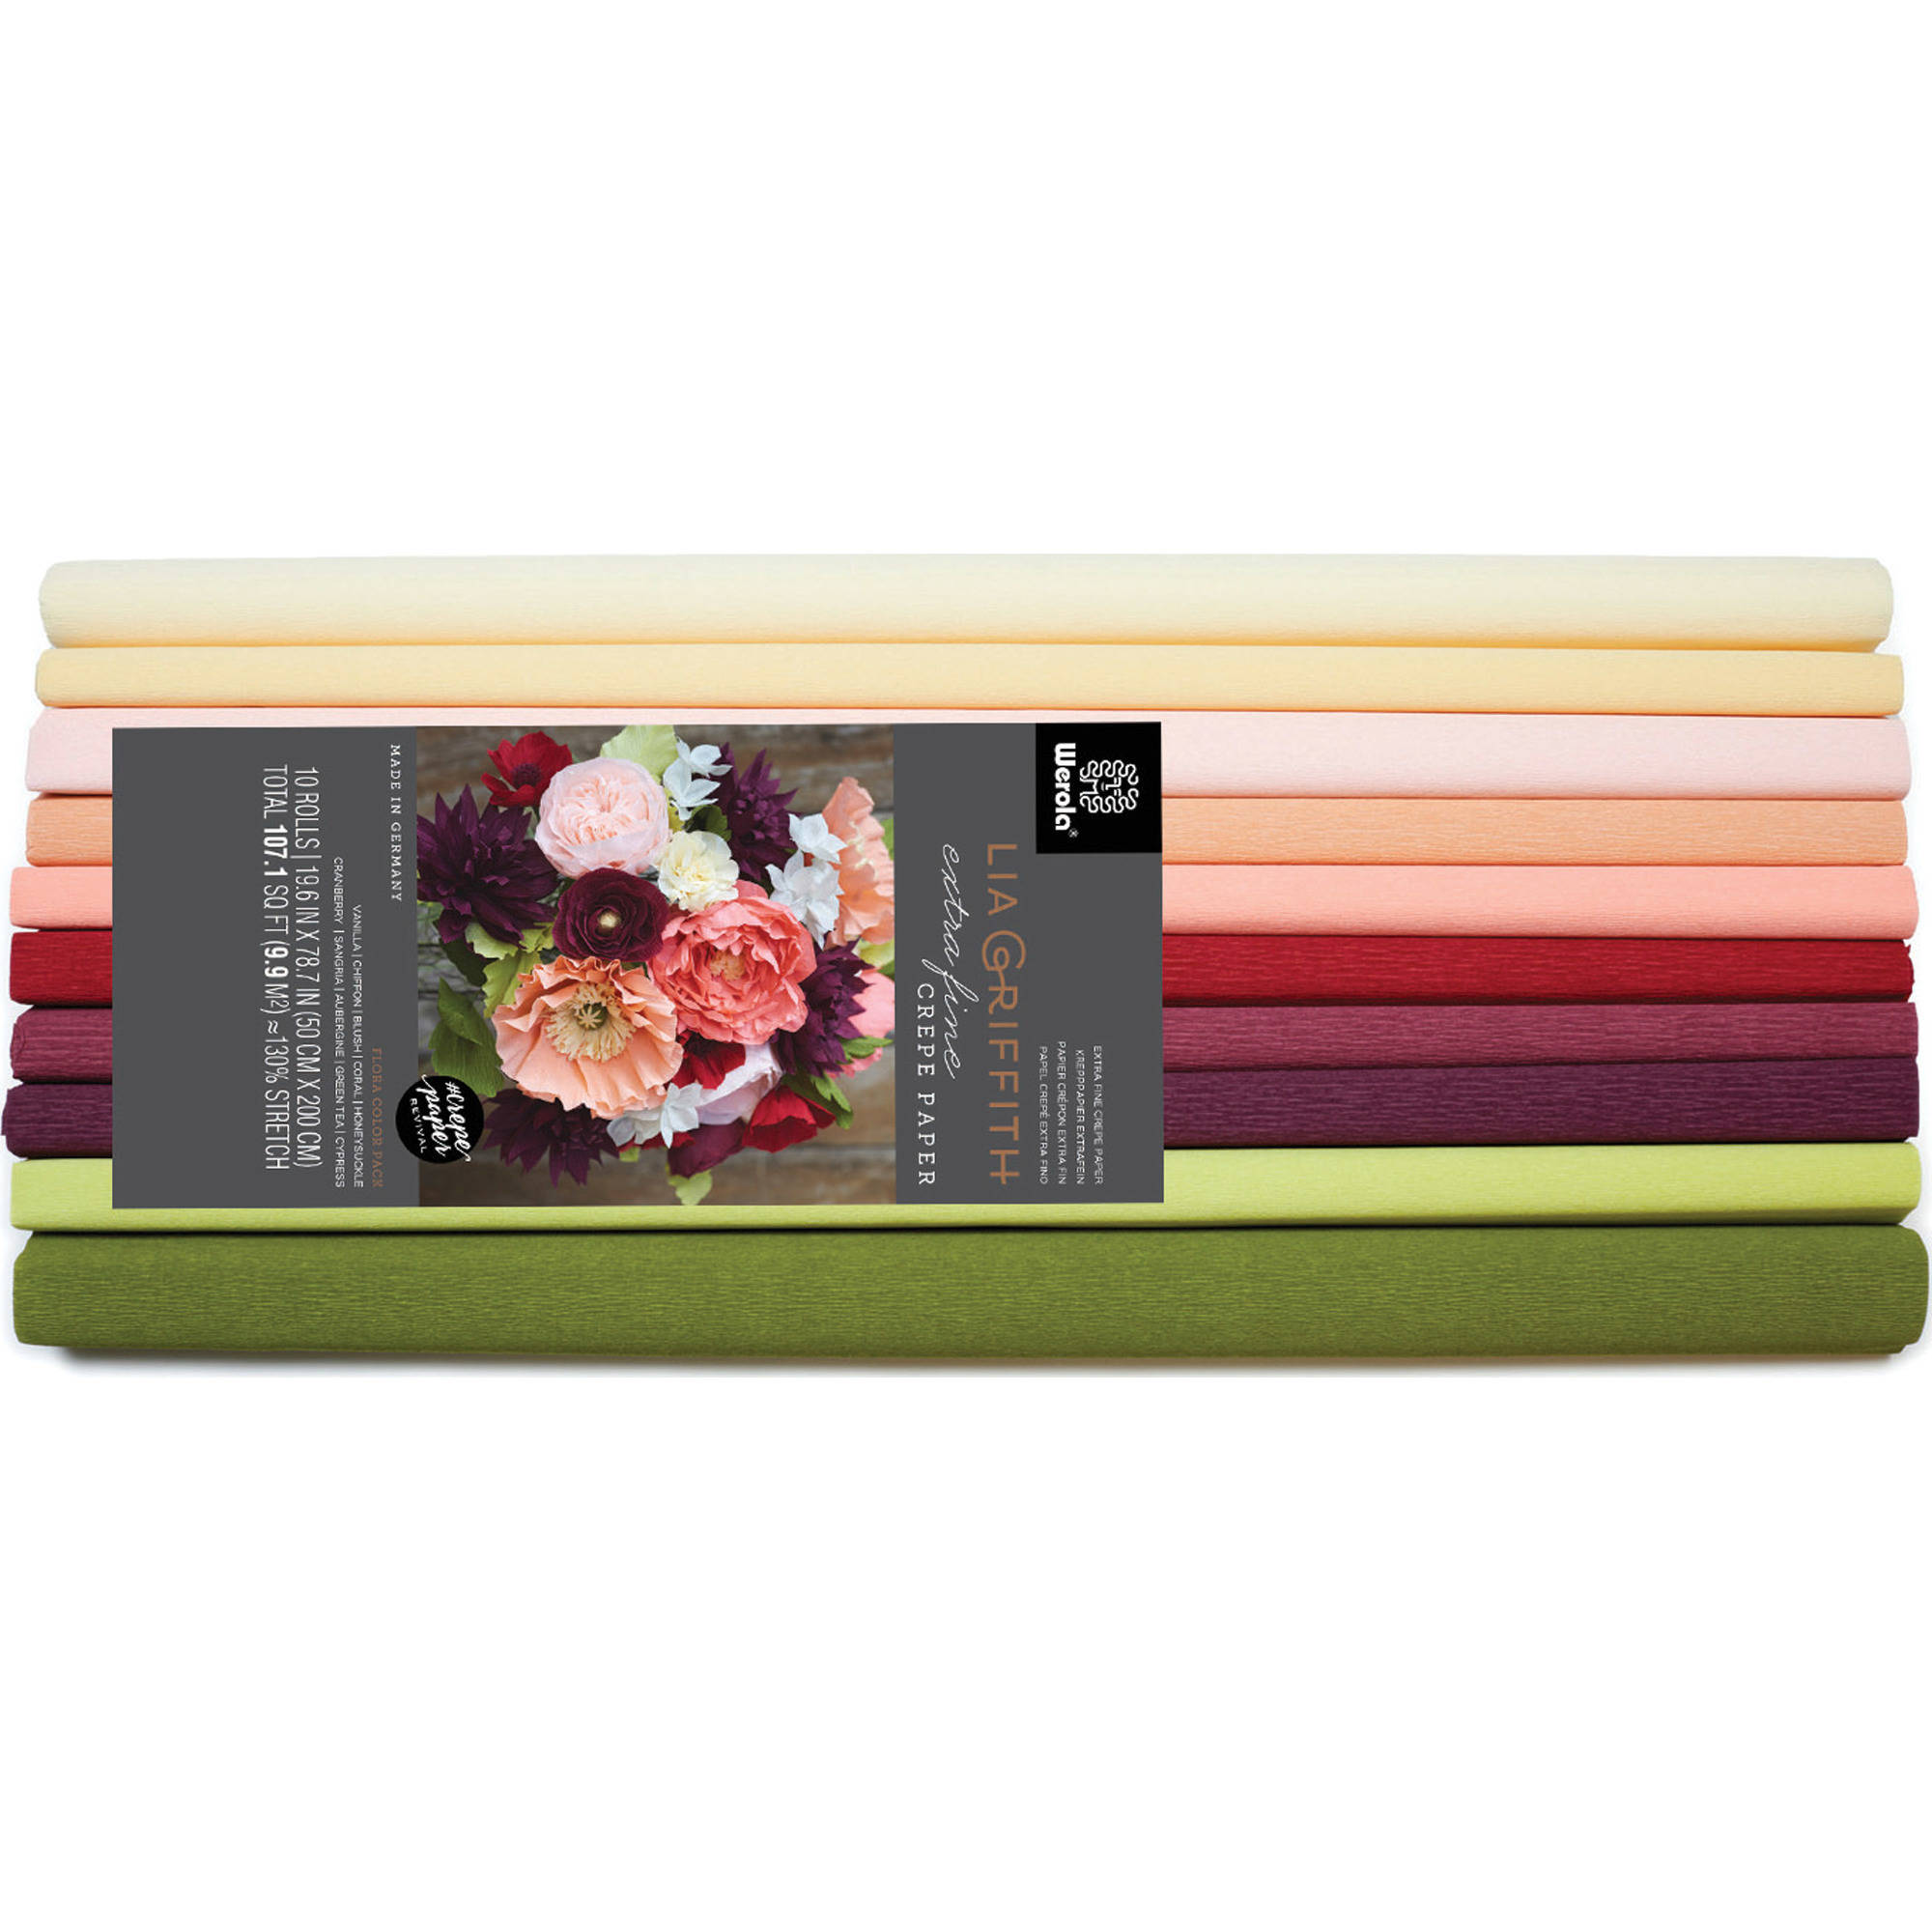 Lia Griffith Extra Fine Crepe Paper, Assorted Flora Craft Paper, 10 pk